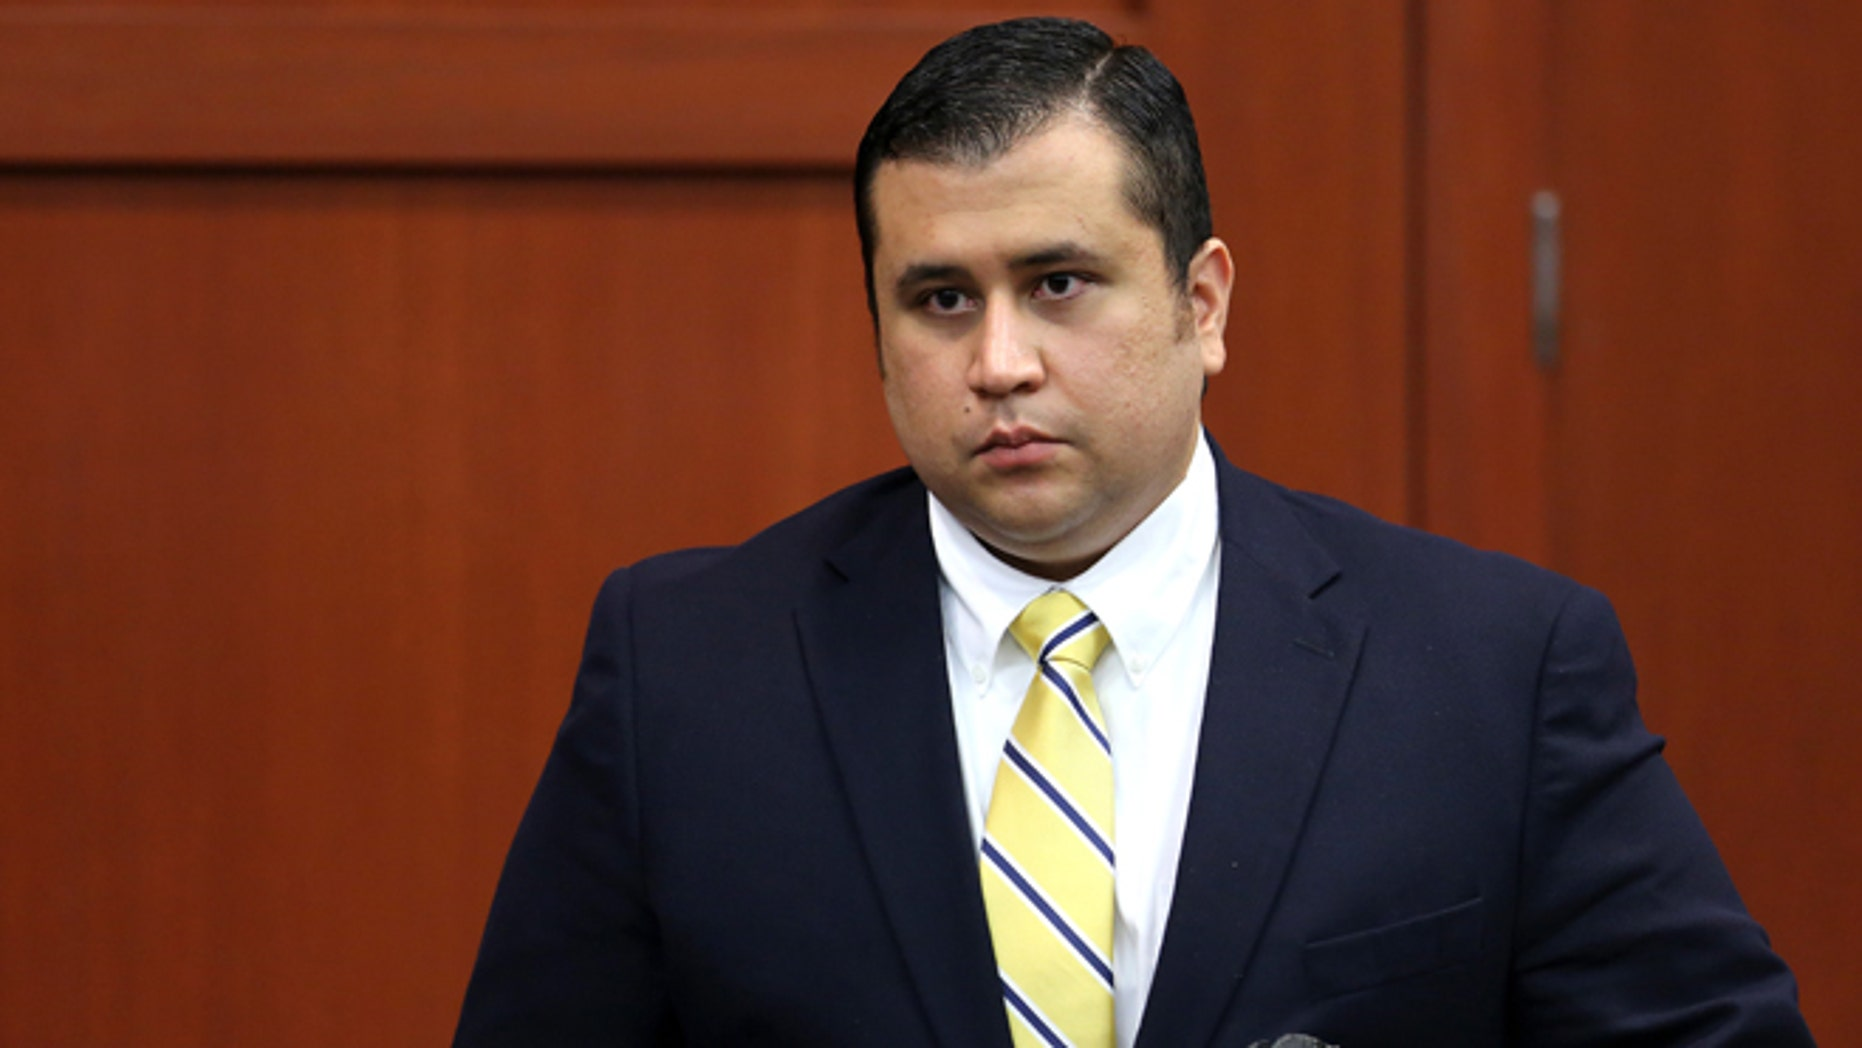 George Zimmerman leaves the courtroom on recess during  the 15th day of his murder trial in Seminole circuit court June 28, 2013 in Sanford, Florida.  (Photo by Joe Burbank-Pool/Getty Images)